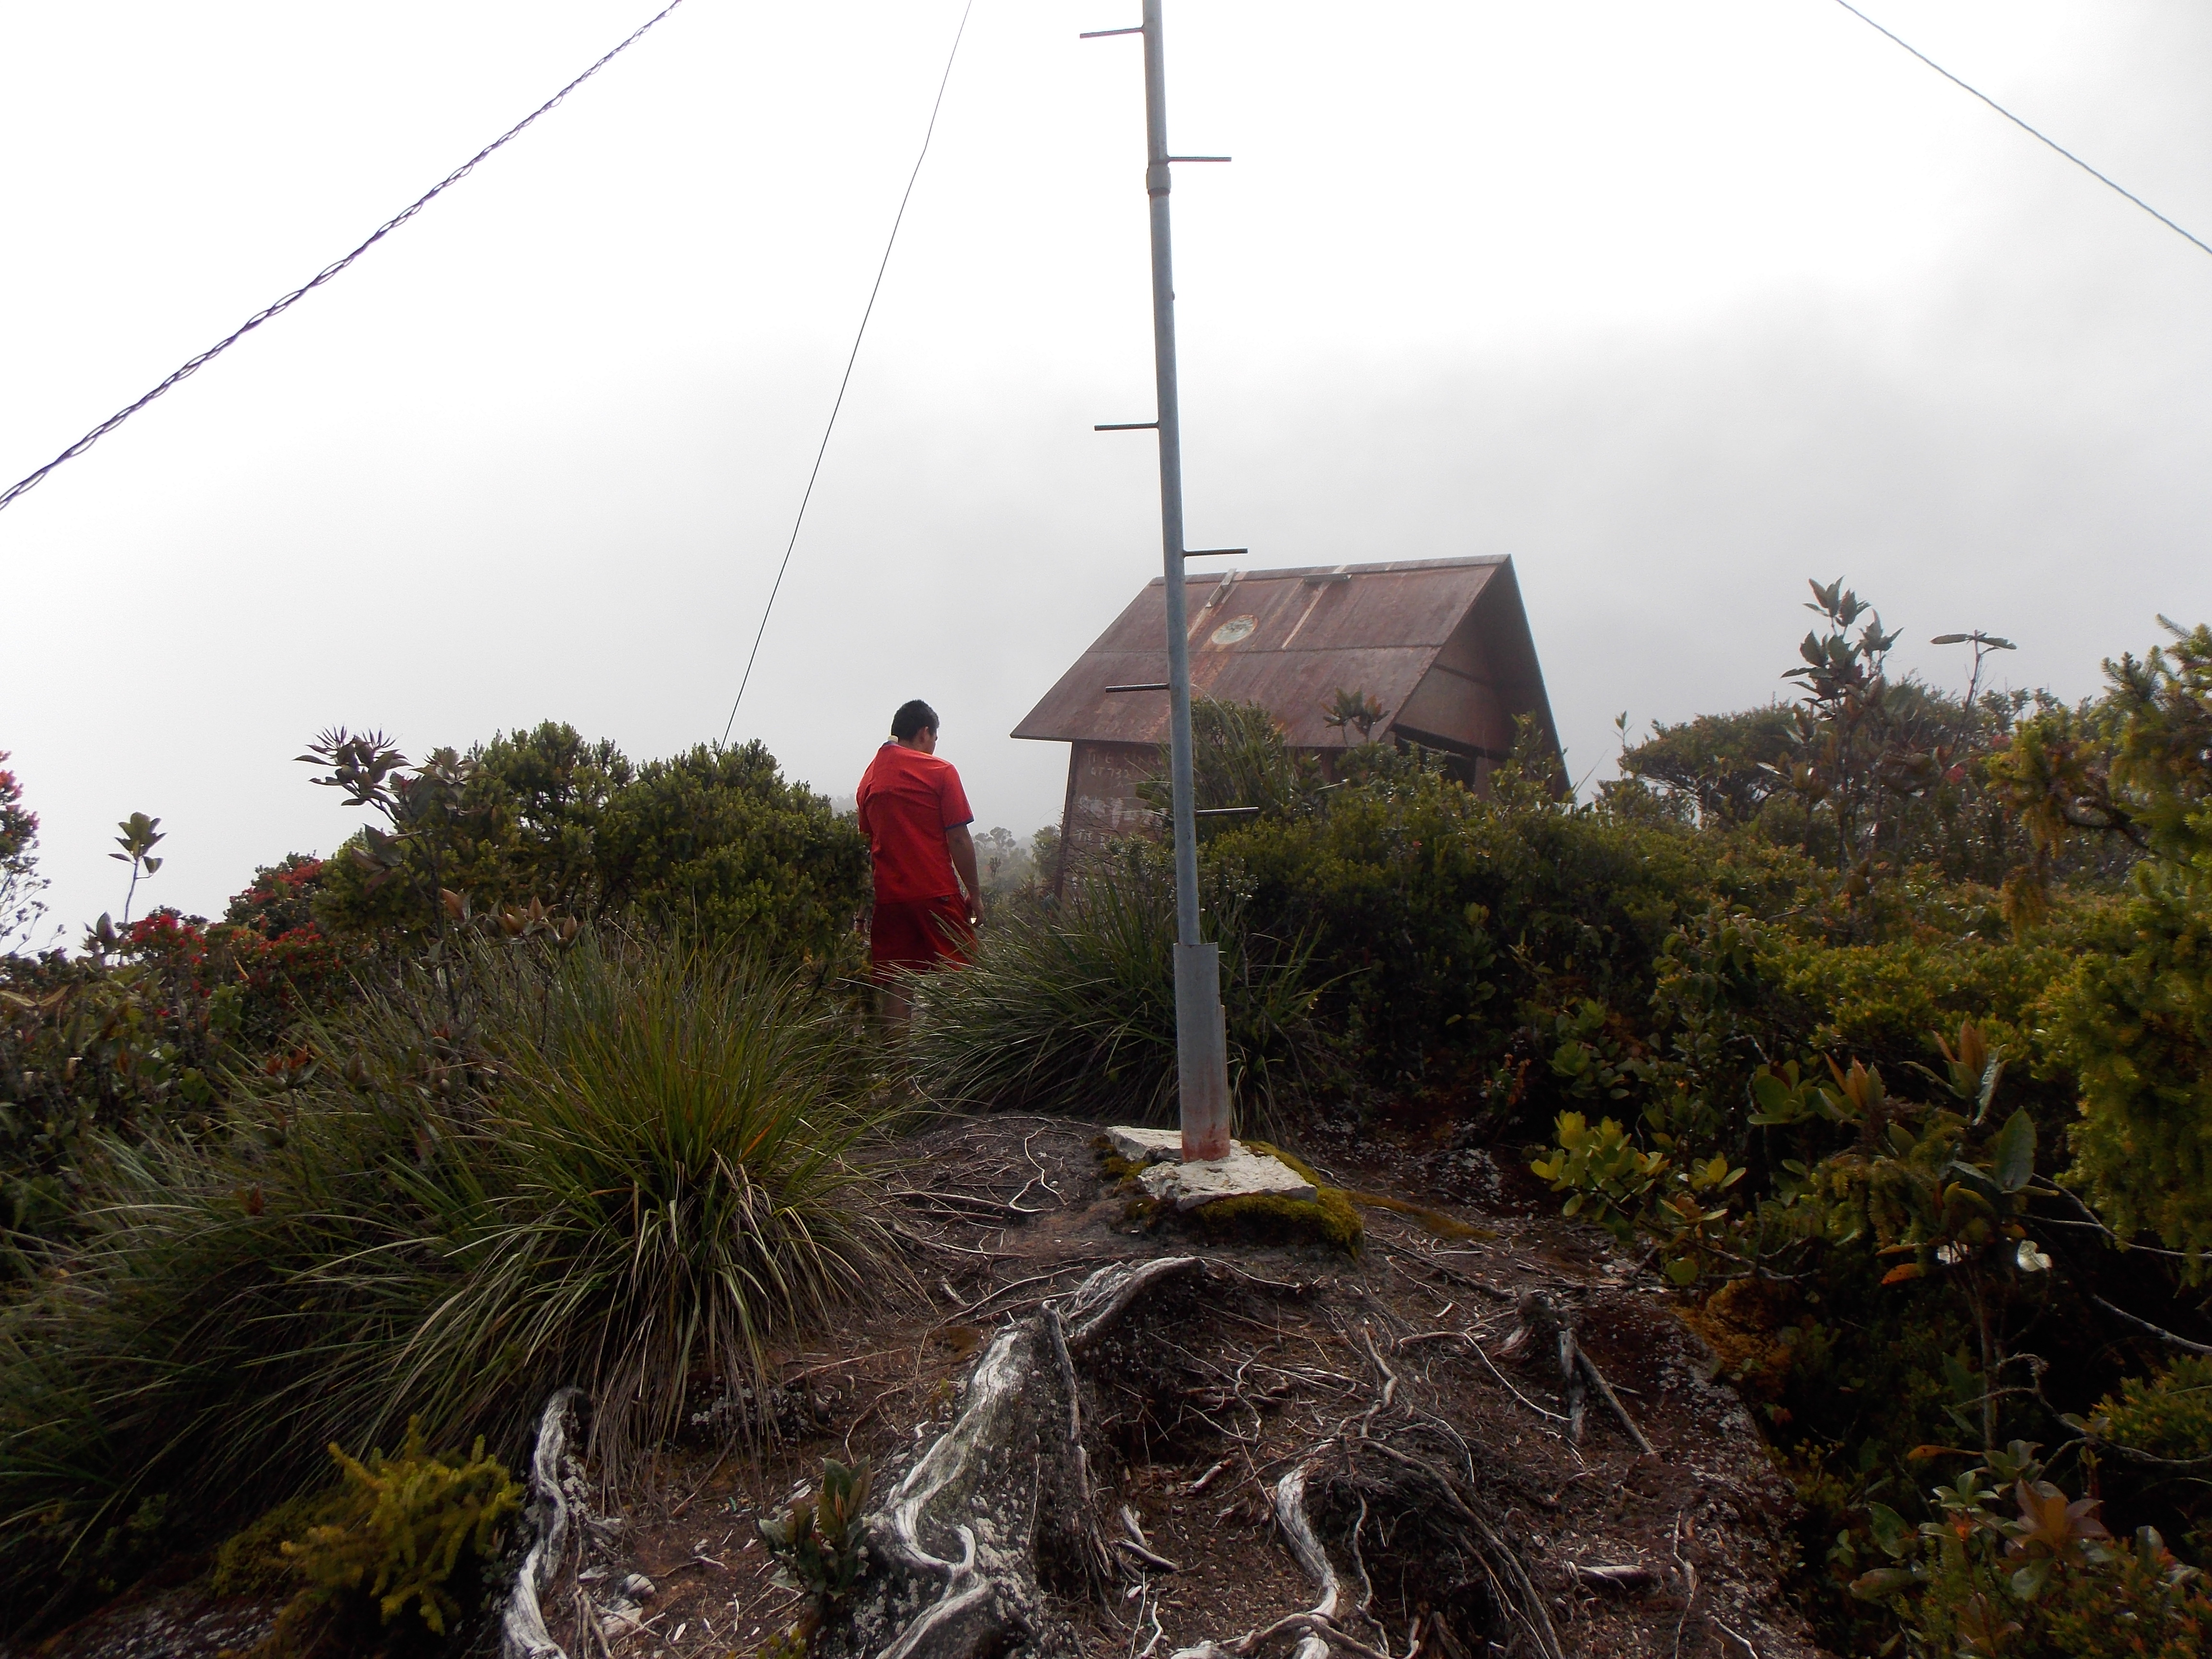 110 Mulu summit mast and building